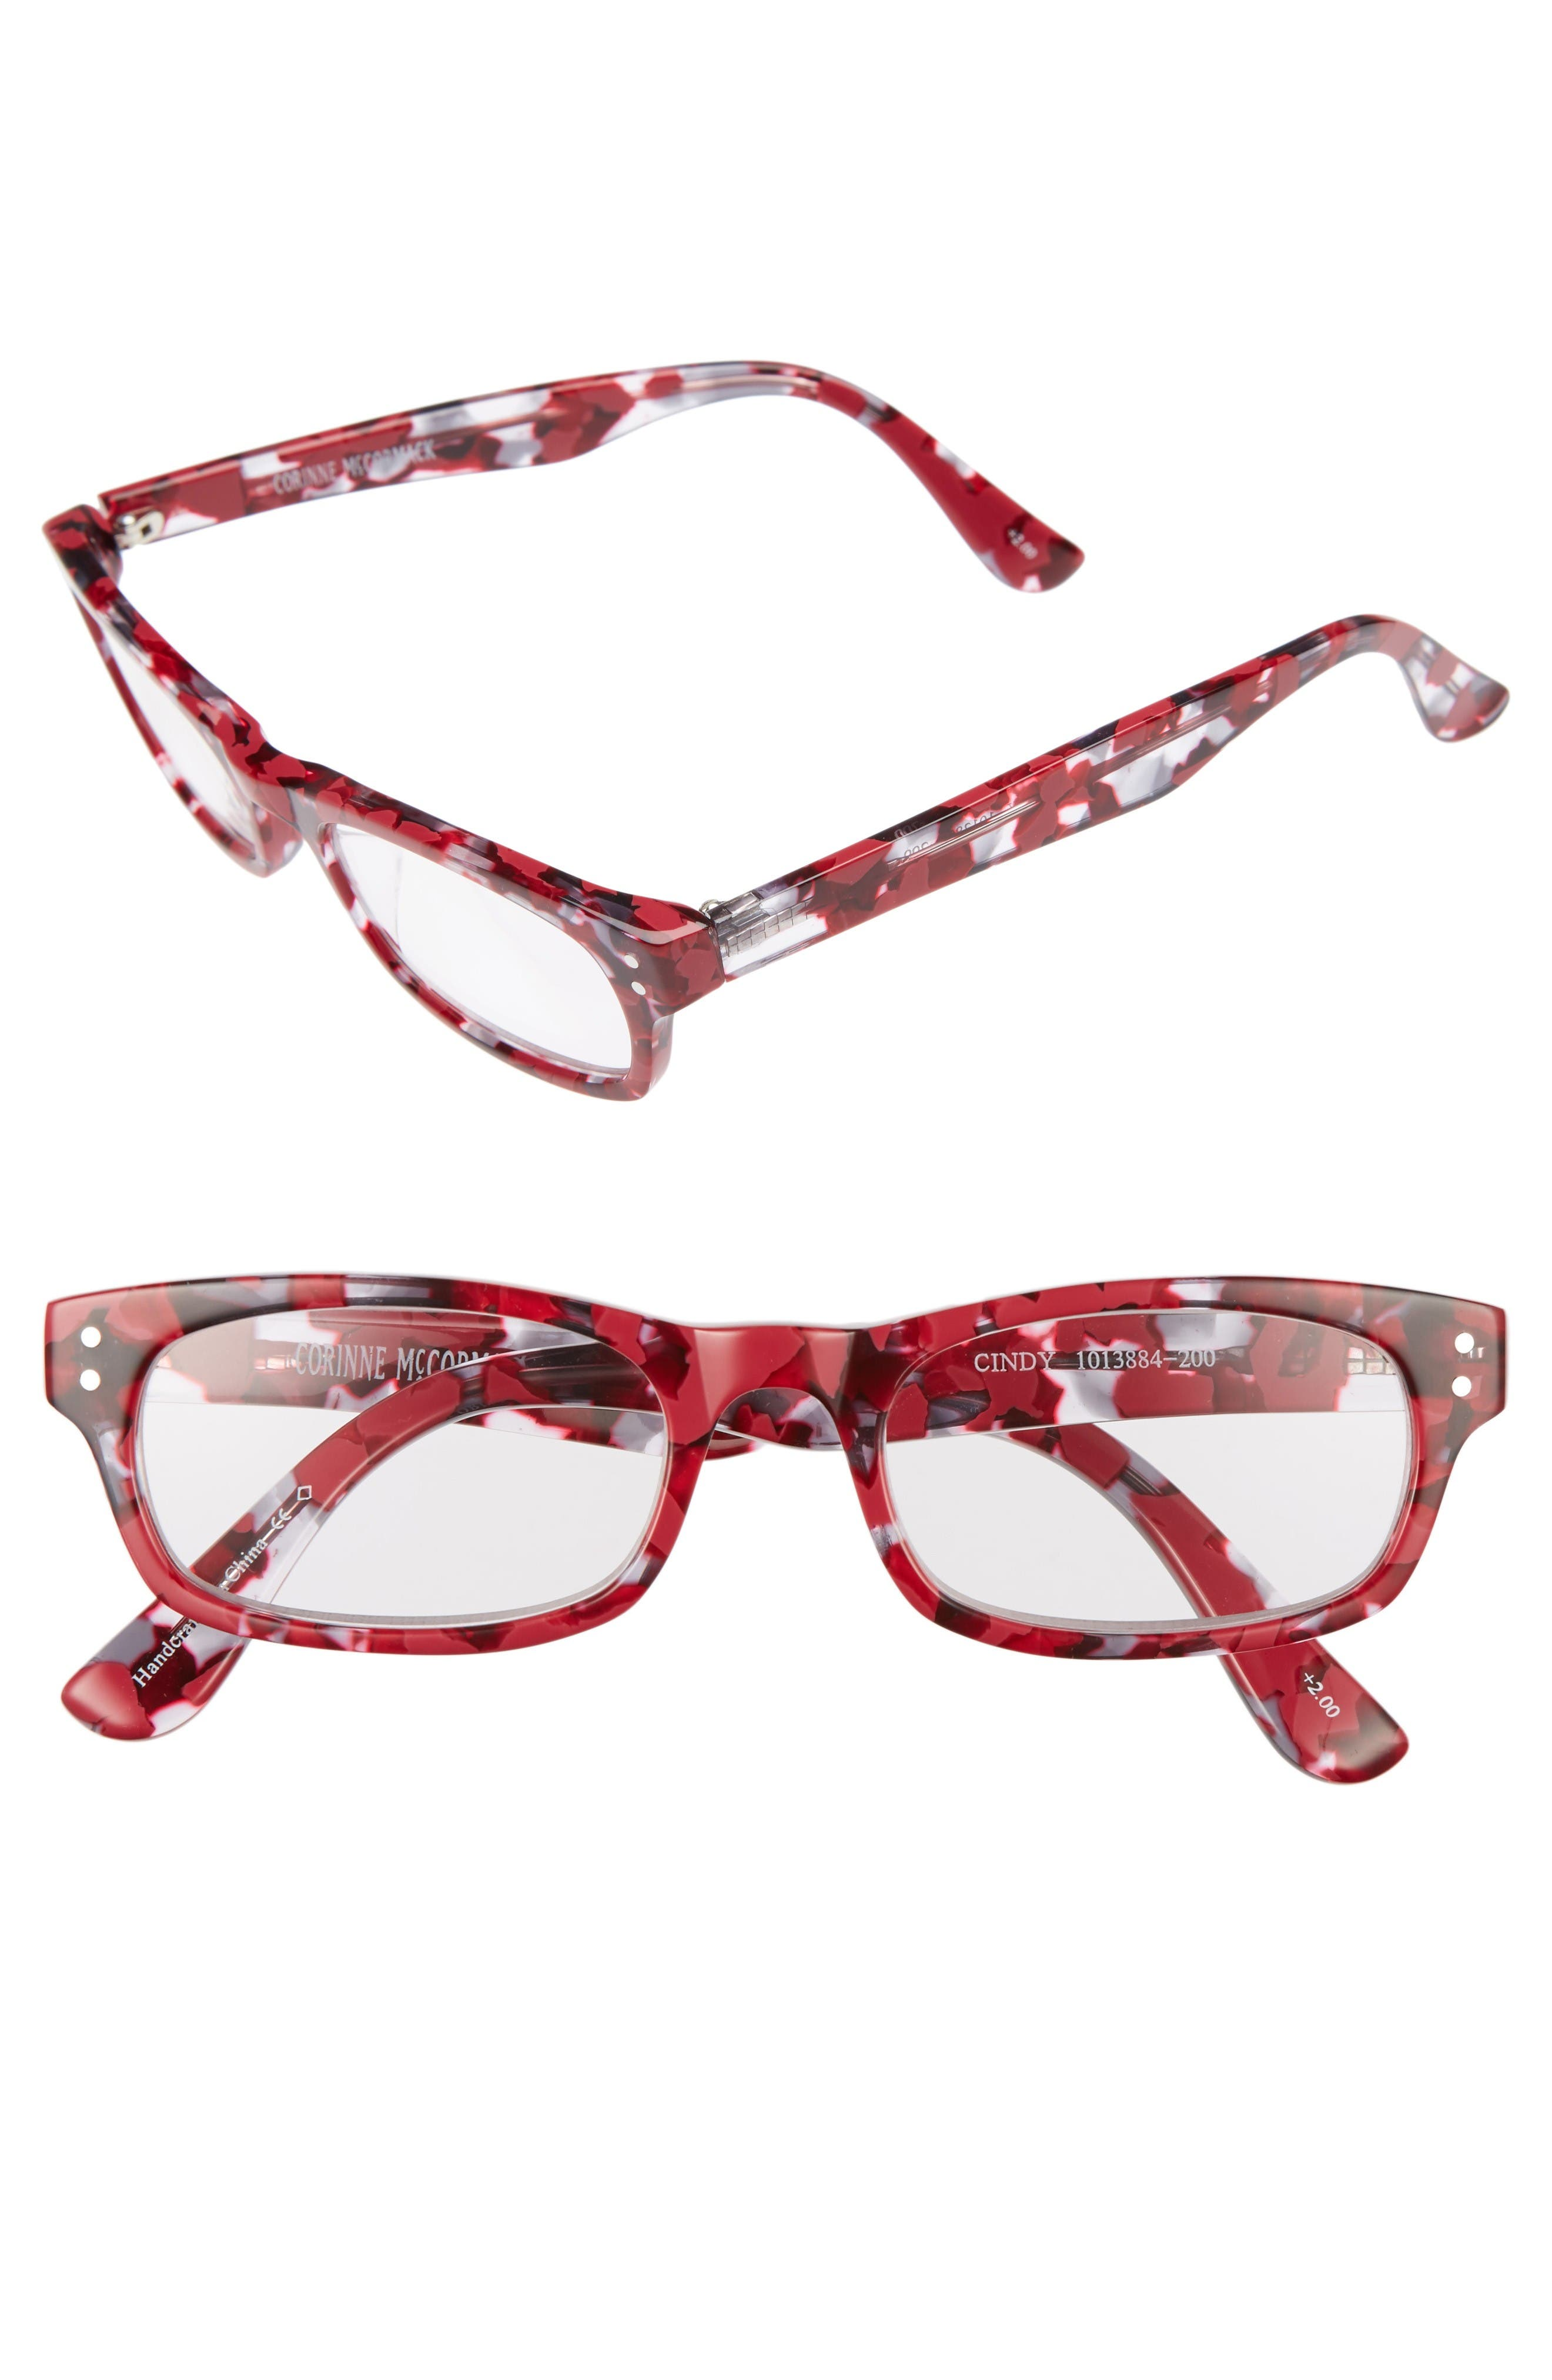 Main Image - Corinne McCormack Cindy 50mm Reading Glasses